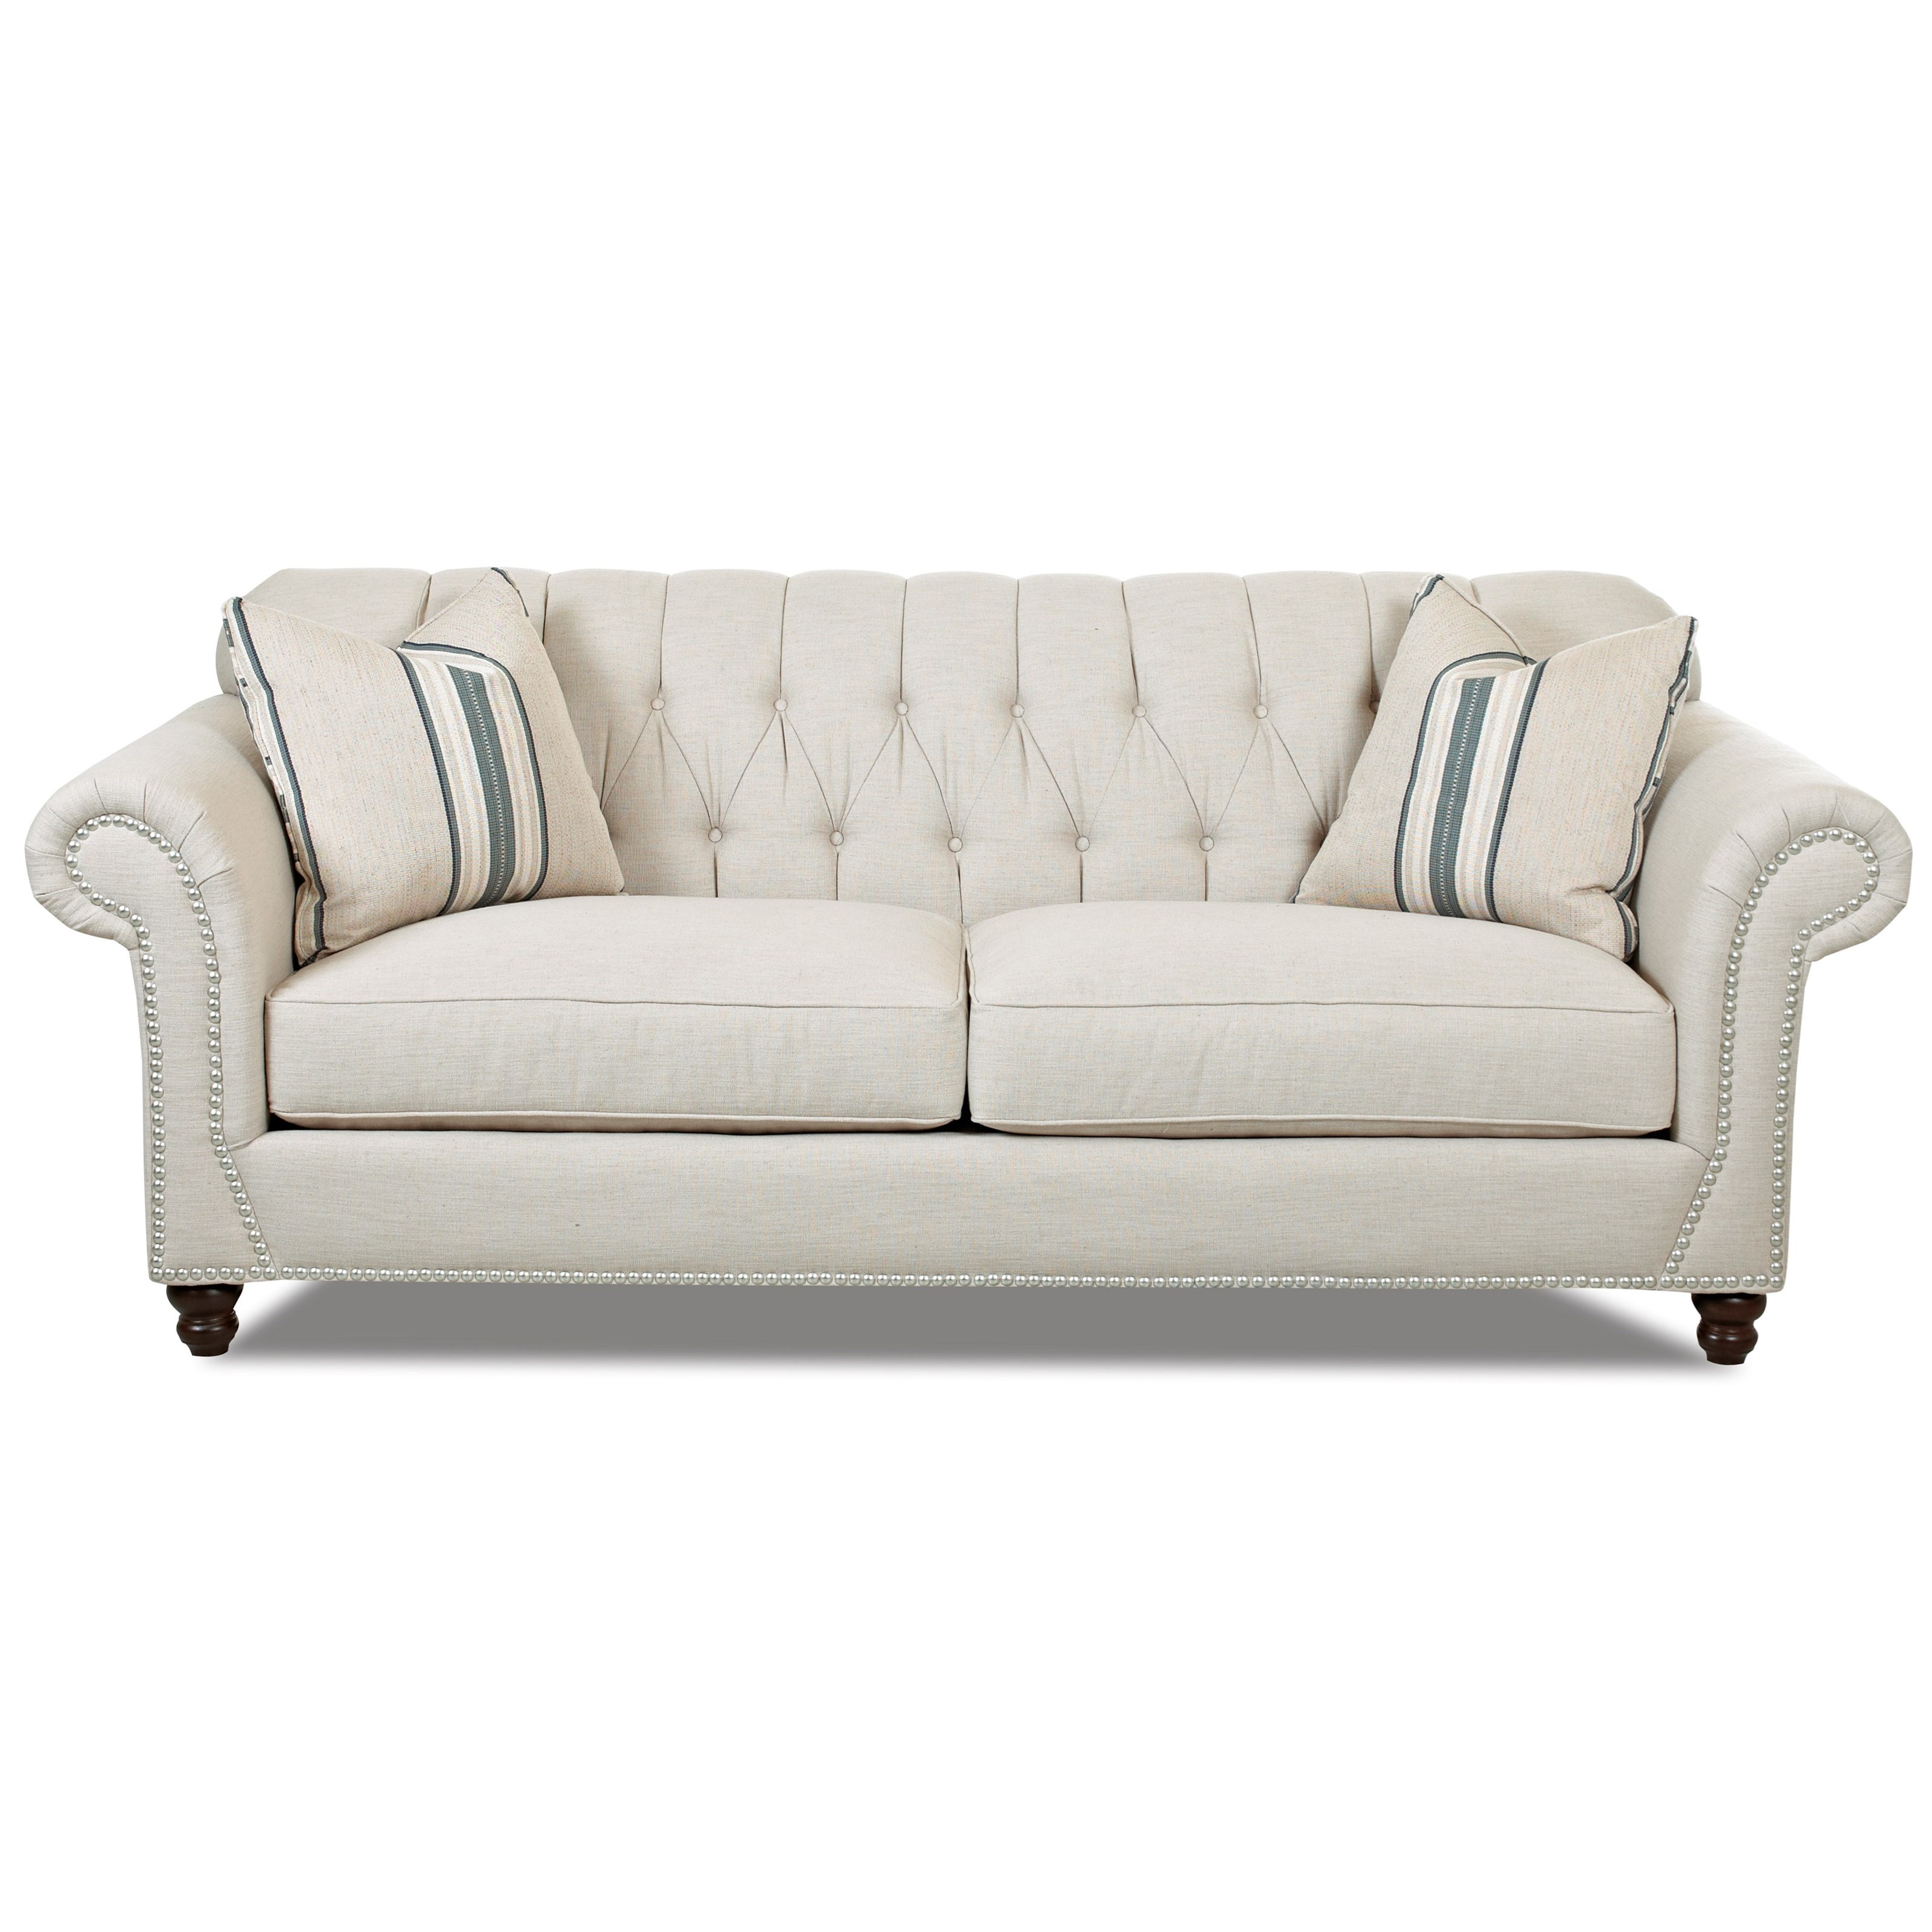 Klaussner Flynn Traditional Sofa With On Tufted Back And Rolled Arms